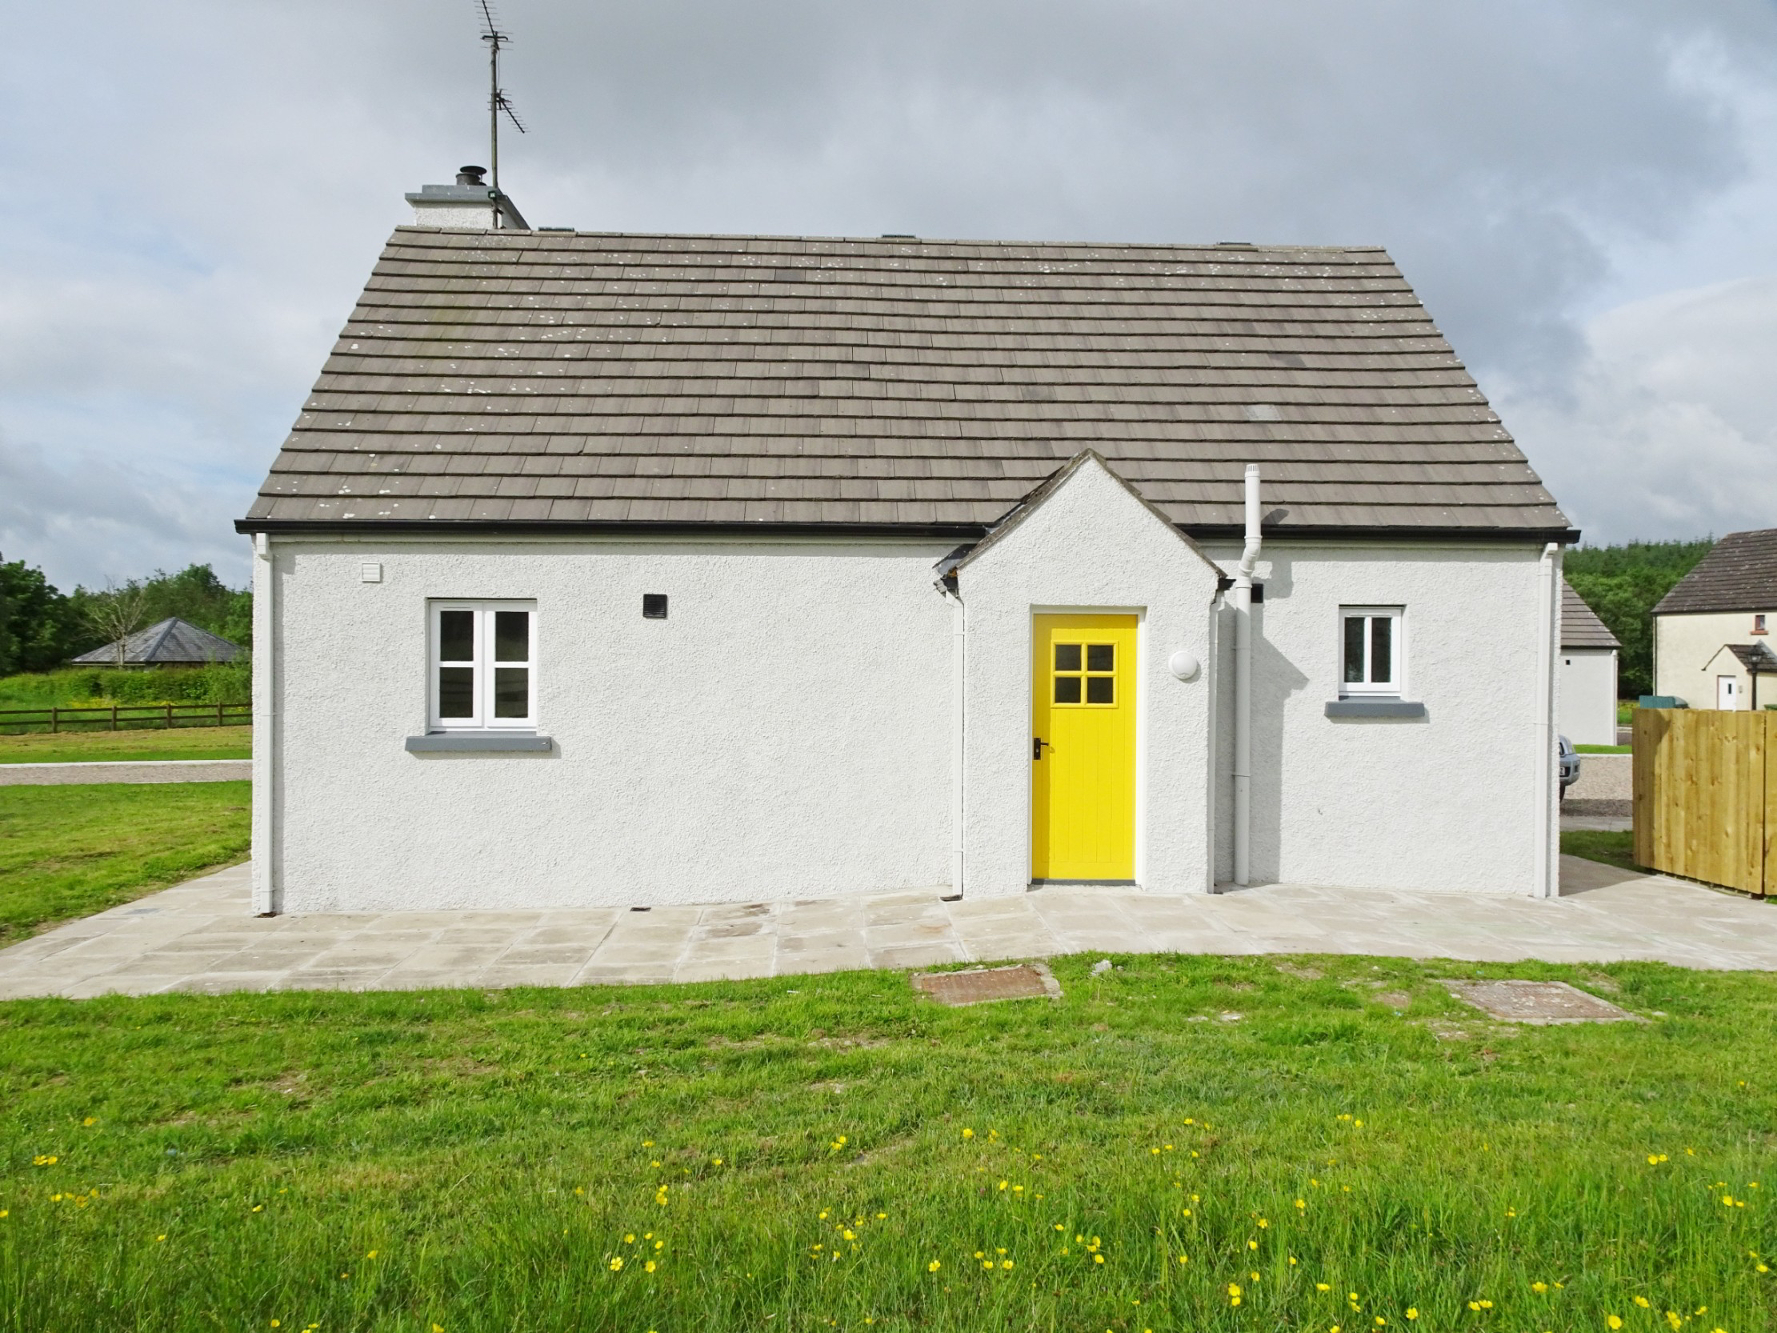 Photo 1 of Inishturk Cottage, Corraquil Country Cottages, Teemore, Derrylin